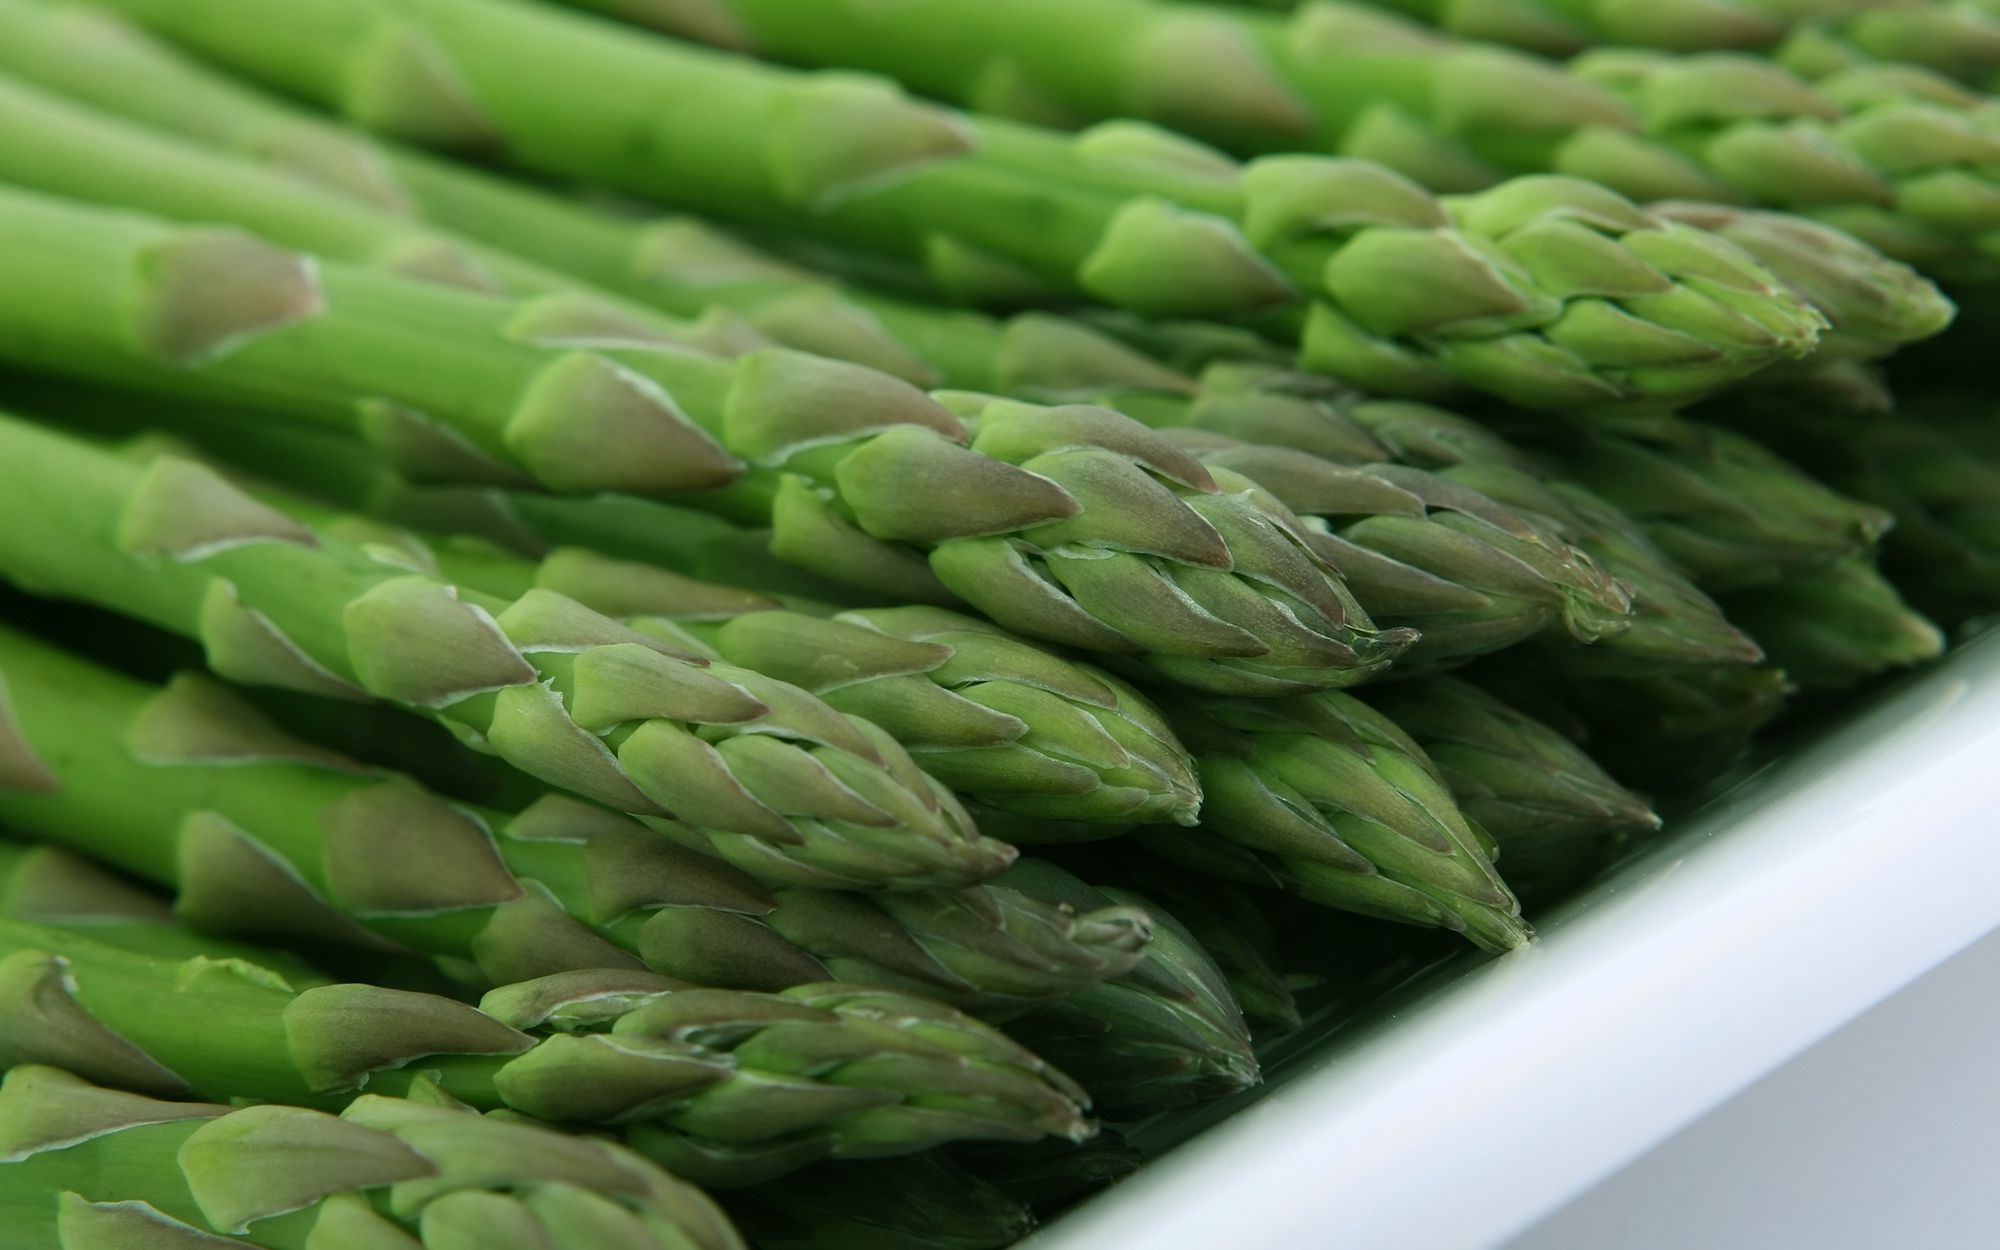 Can Asparagus Cause Breast Cancer?